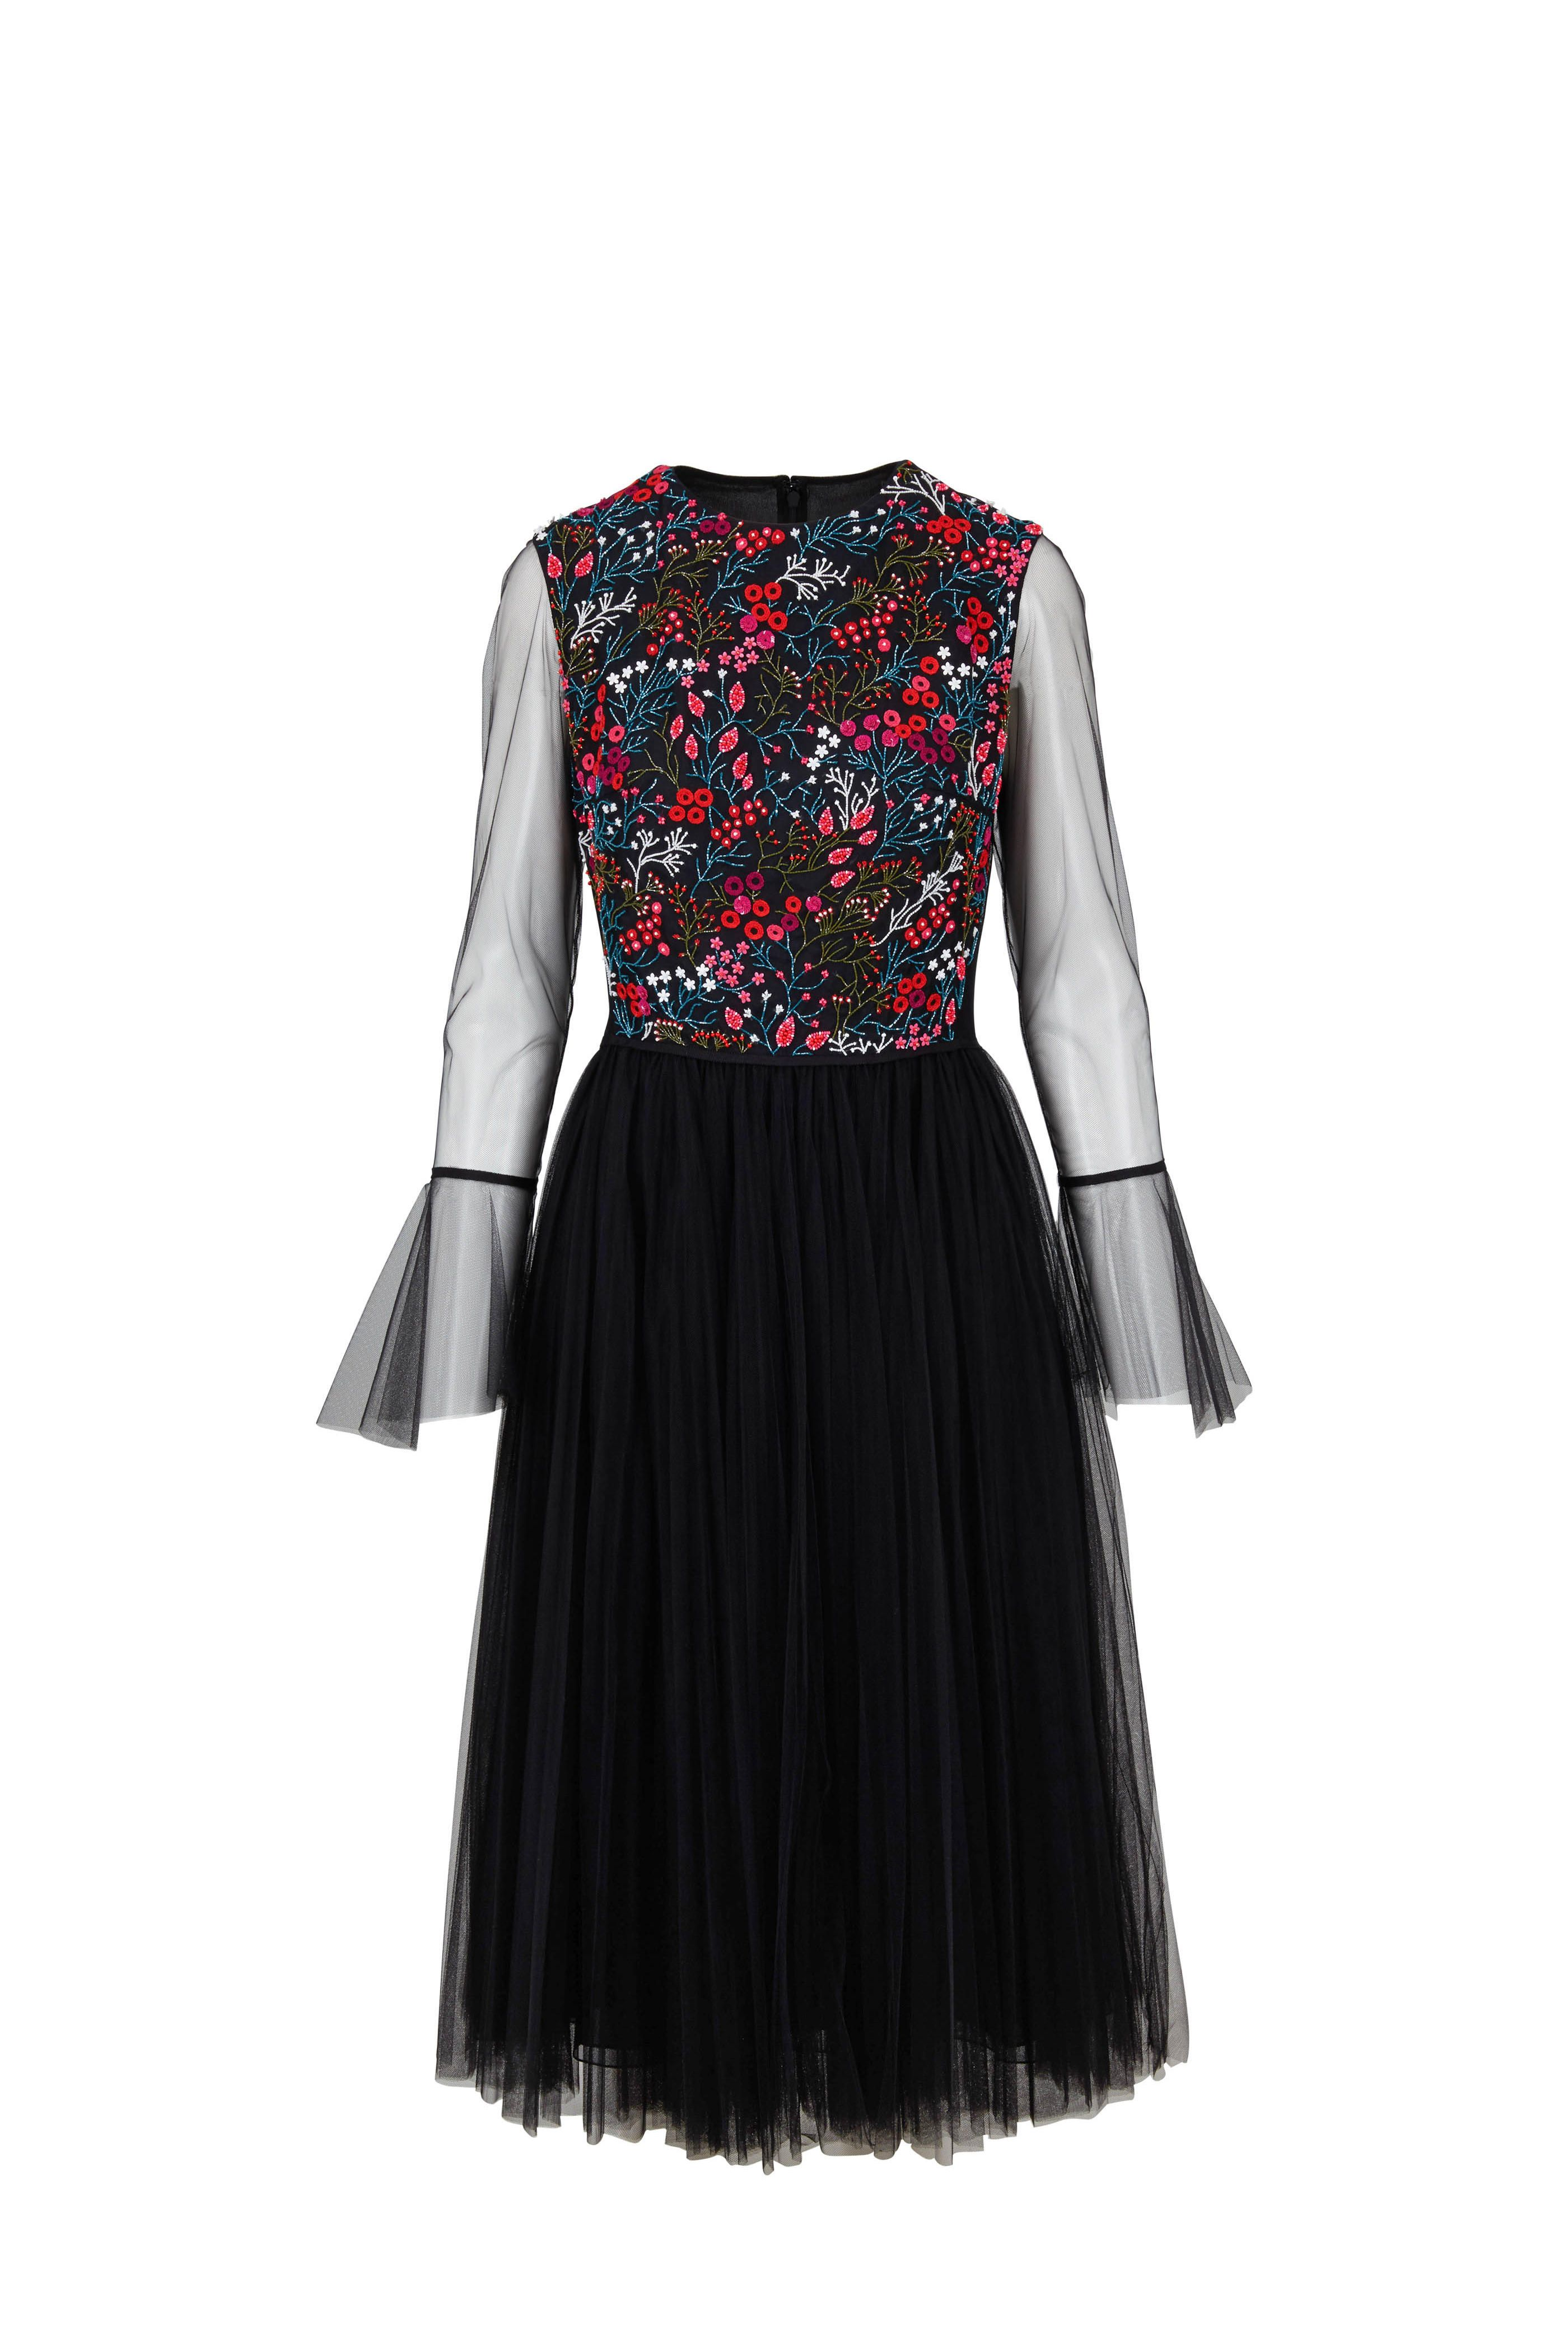 492bf7a9606aa1 Black Tulle Floral Embroidered Cocktail Dress in 2019 | Carolina ...